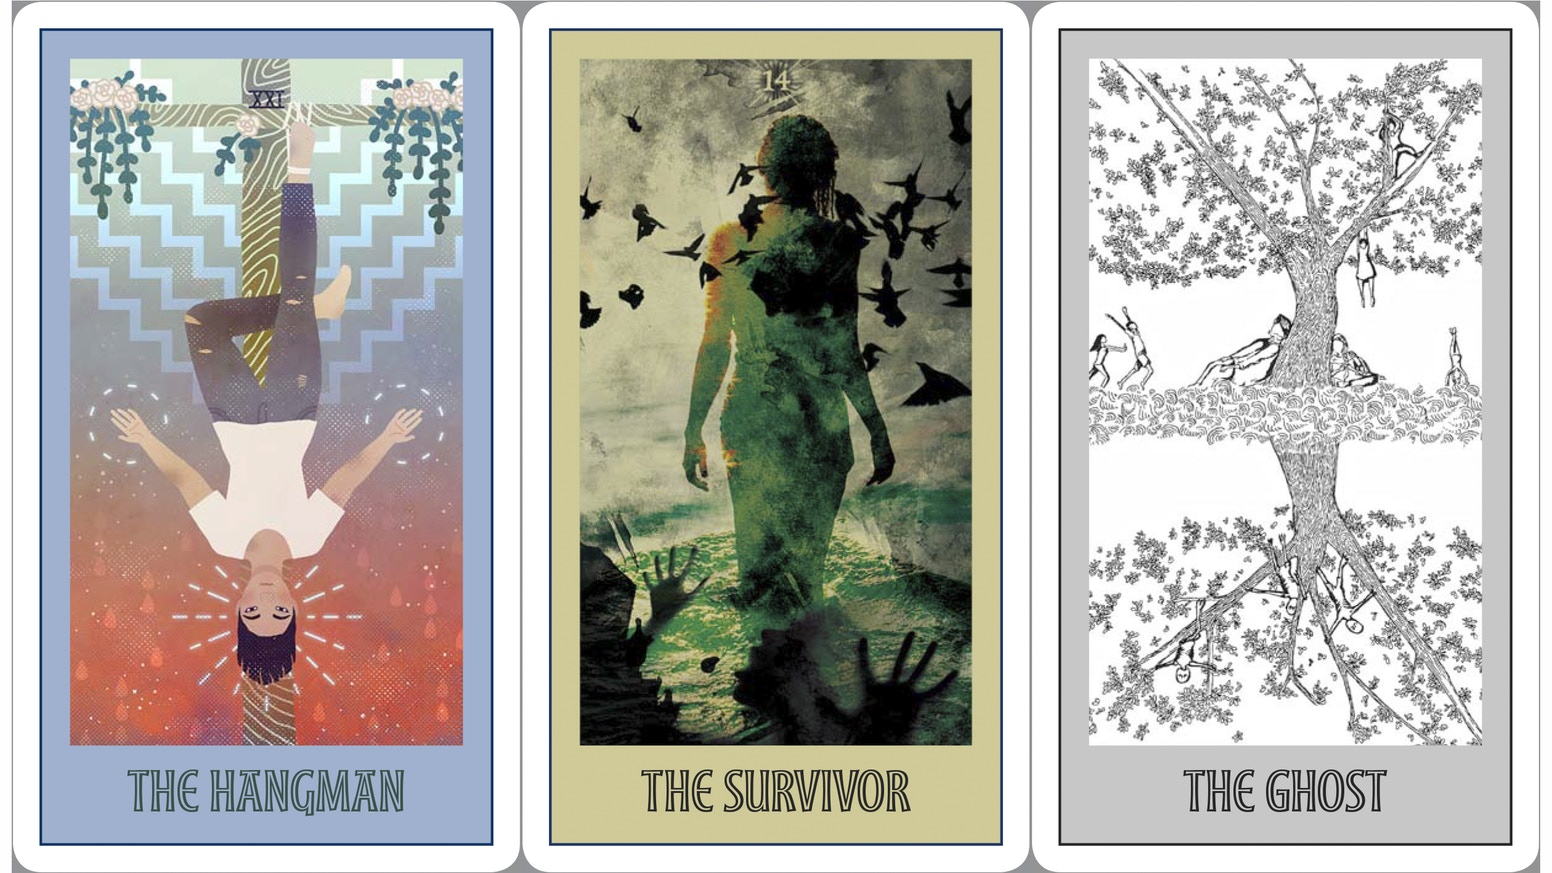 A new deck of tarot cards, featuring original art and text, revealing the hidden contours of our Asian American lives.